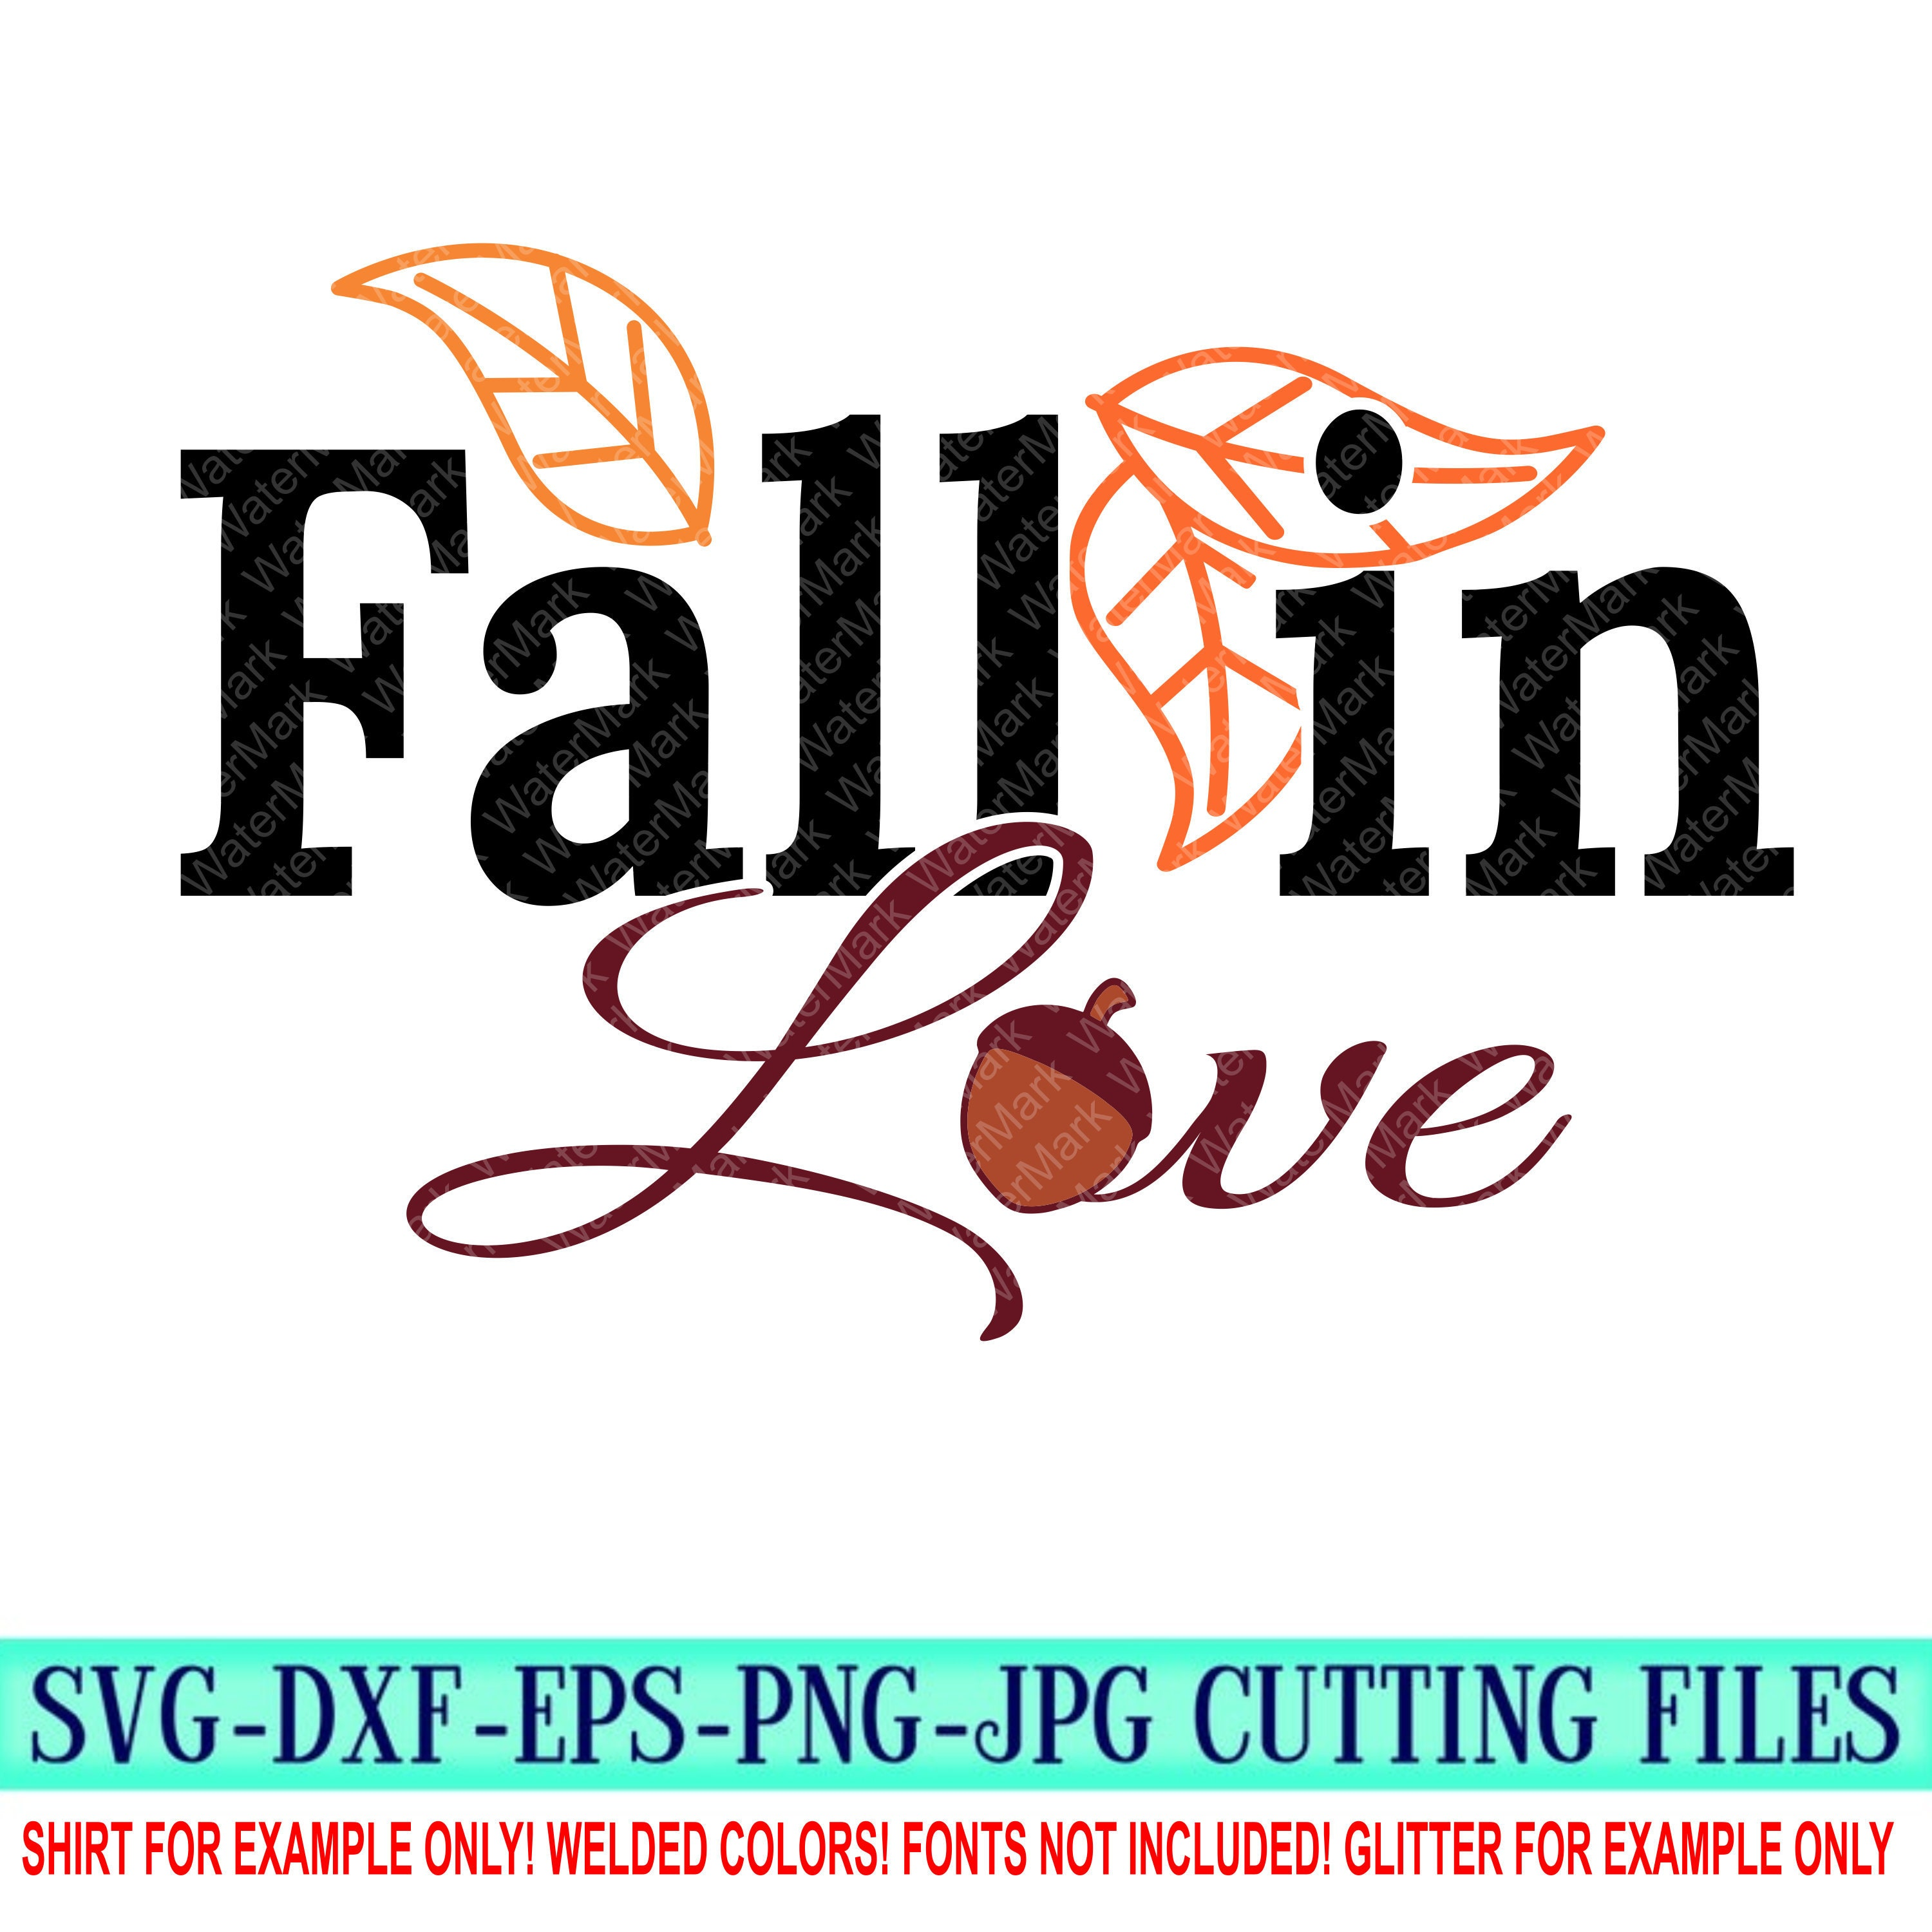 Fall In Love Svg Fall Svg Autumn Svg Fall Cut Files Fall In Love Svgs Halloween Svg Design Cricut Svg Svg For Mobile Mobile Svg